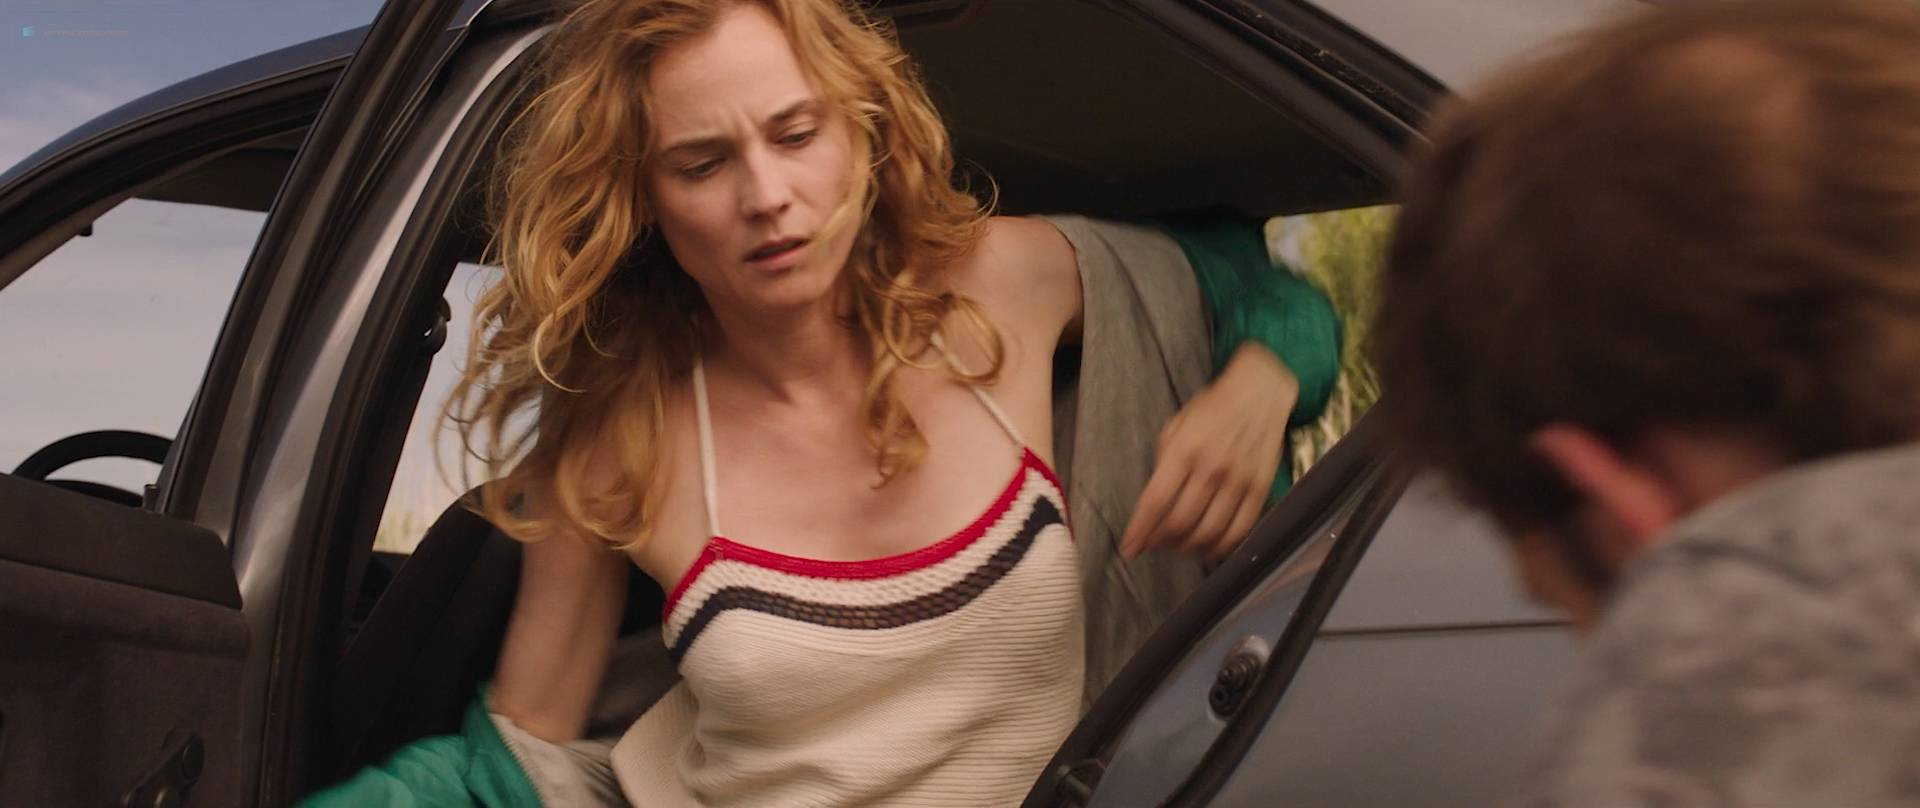 Diane-Kruger-nude-topless-and-sex-in-the-car-Tout-Nous-Separe-FR-2017-HD-1080p-BluRay-010.jpg